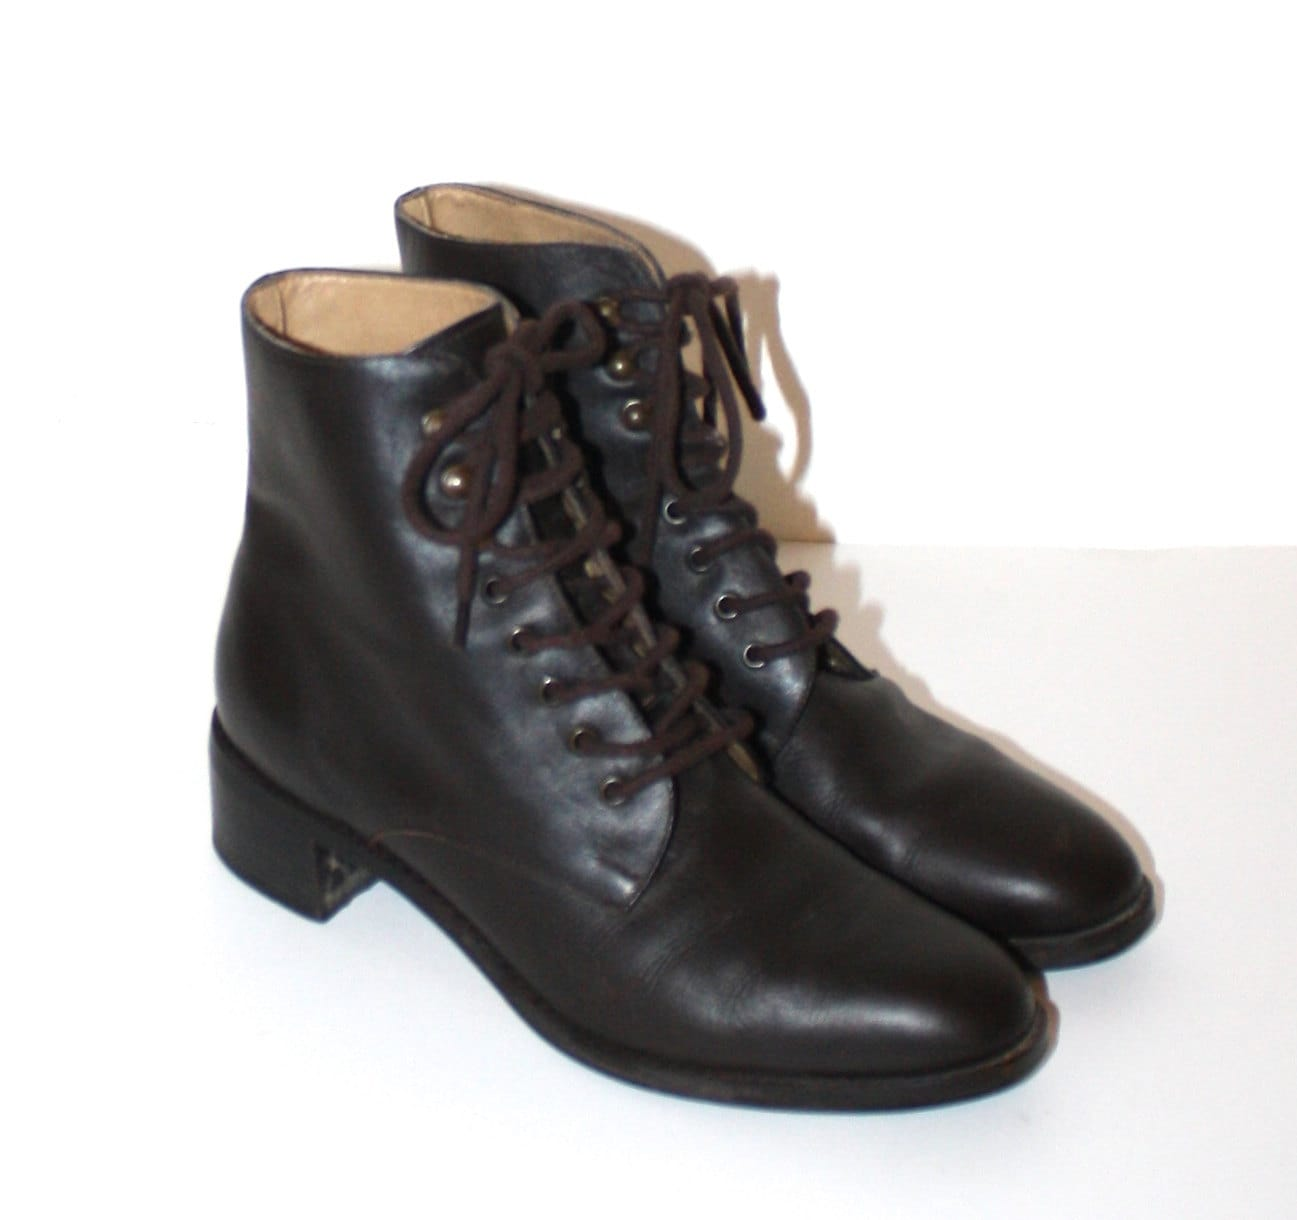 vintage brown leather lace up boots ipanema leather